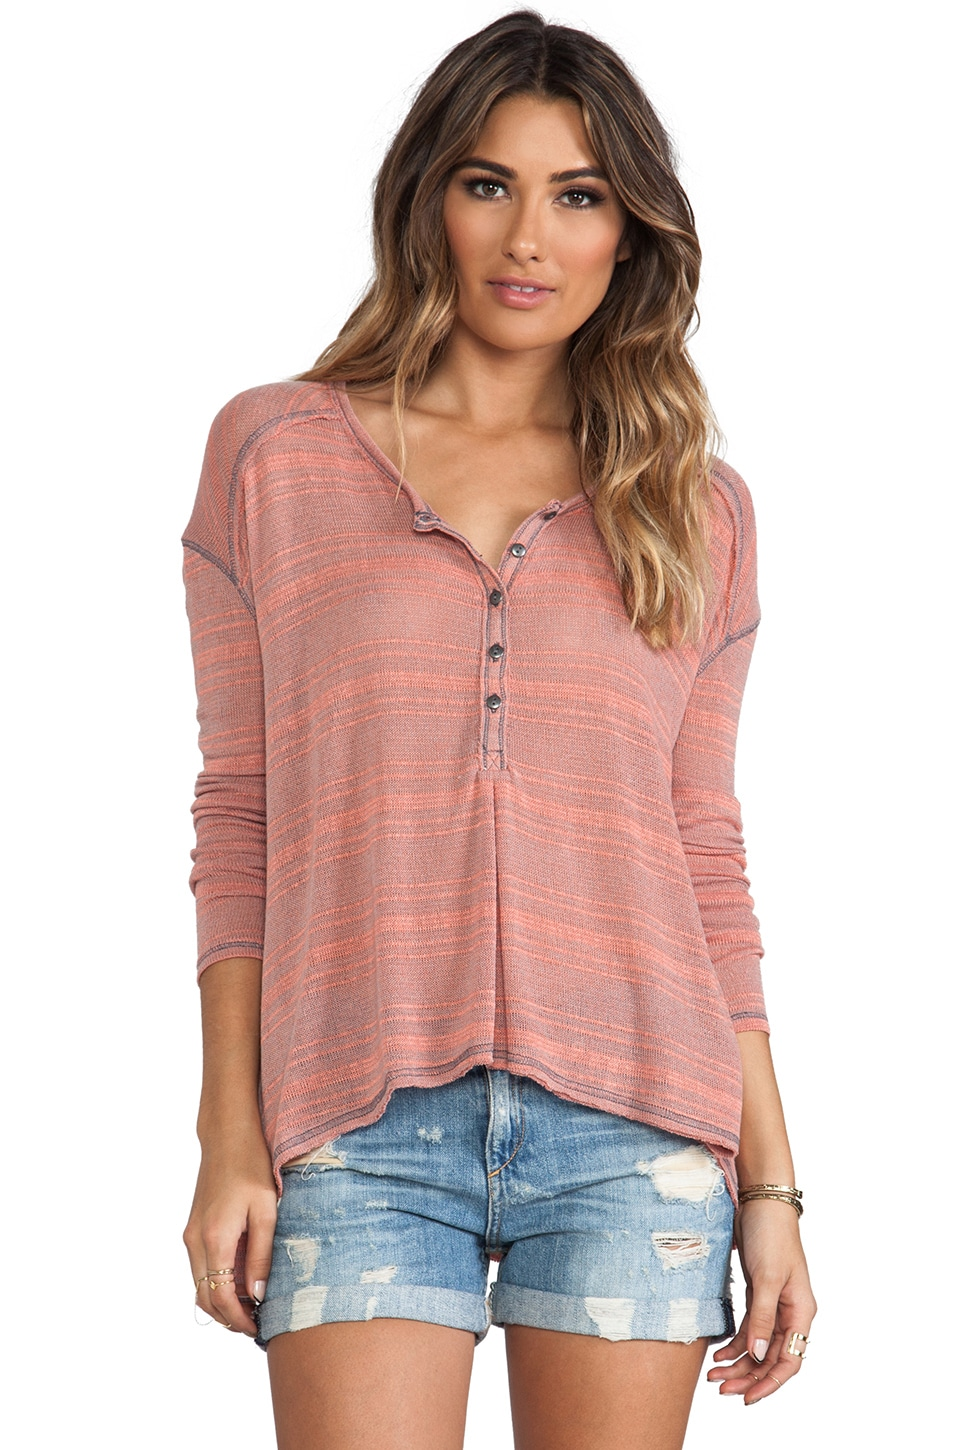 Free People Slinky Hacci Top in Dove Grey Combo